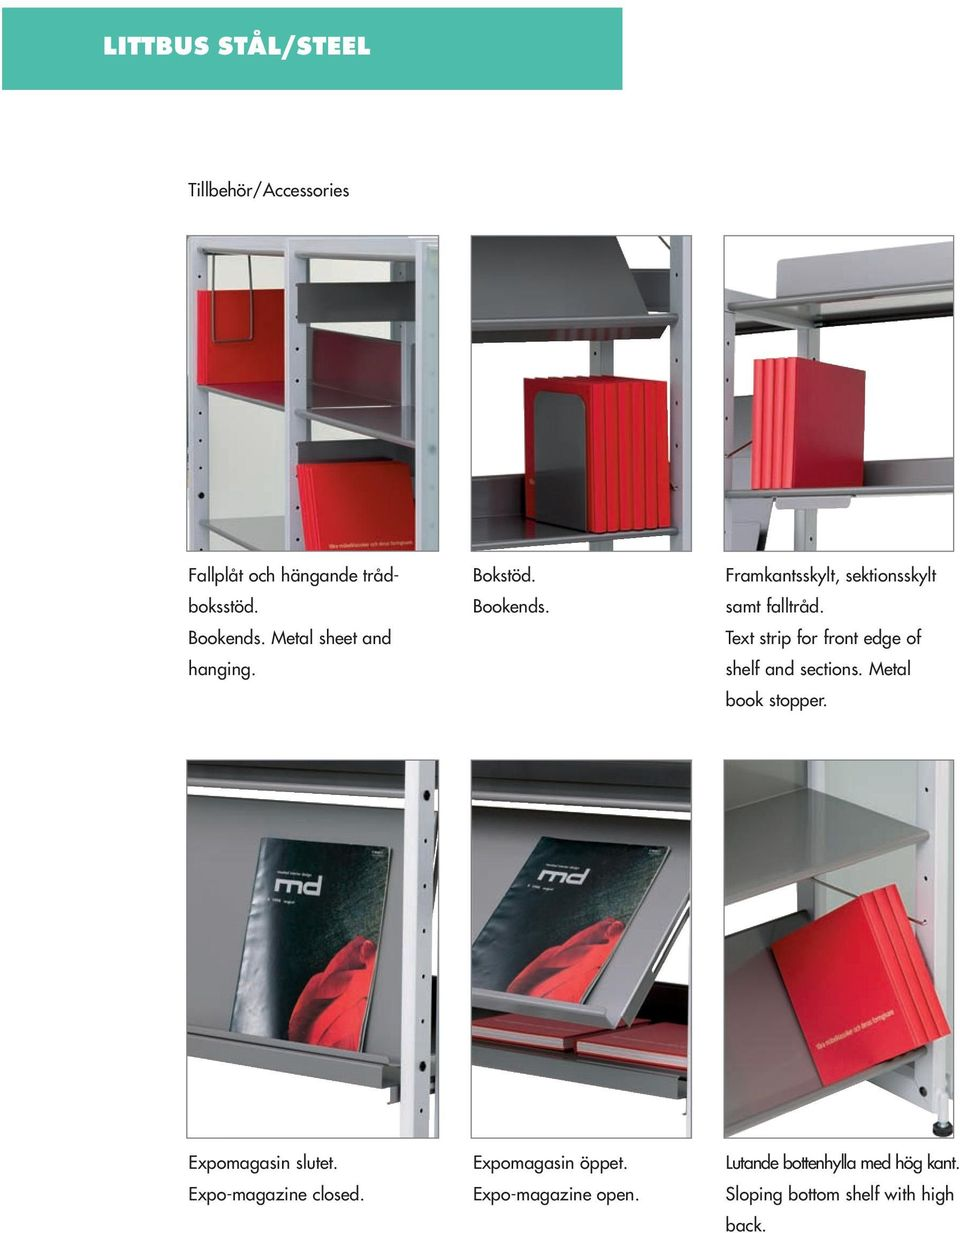 Text strip for front edge of shelf and sections. Metal book stopper. Expomagasin slutet.